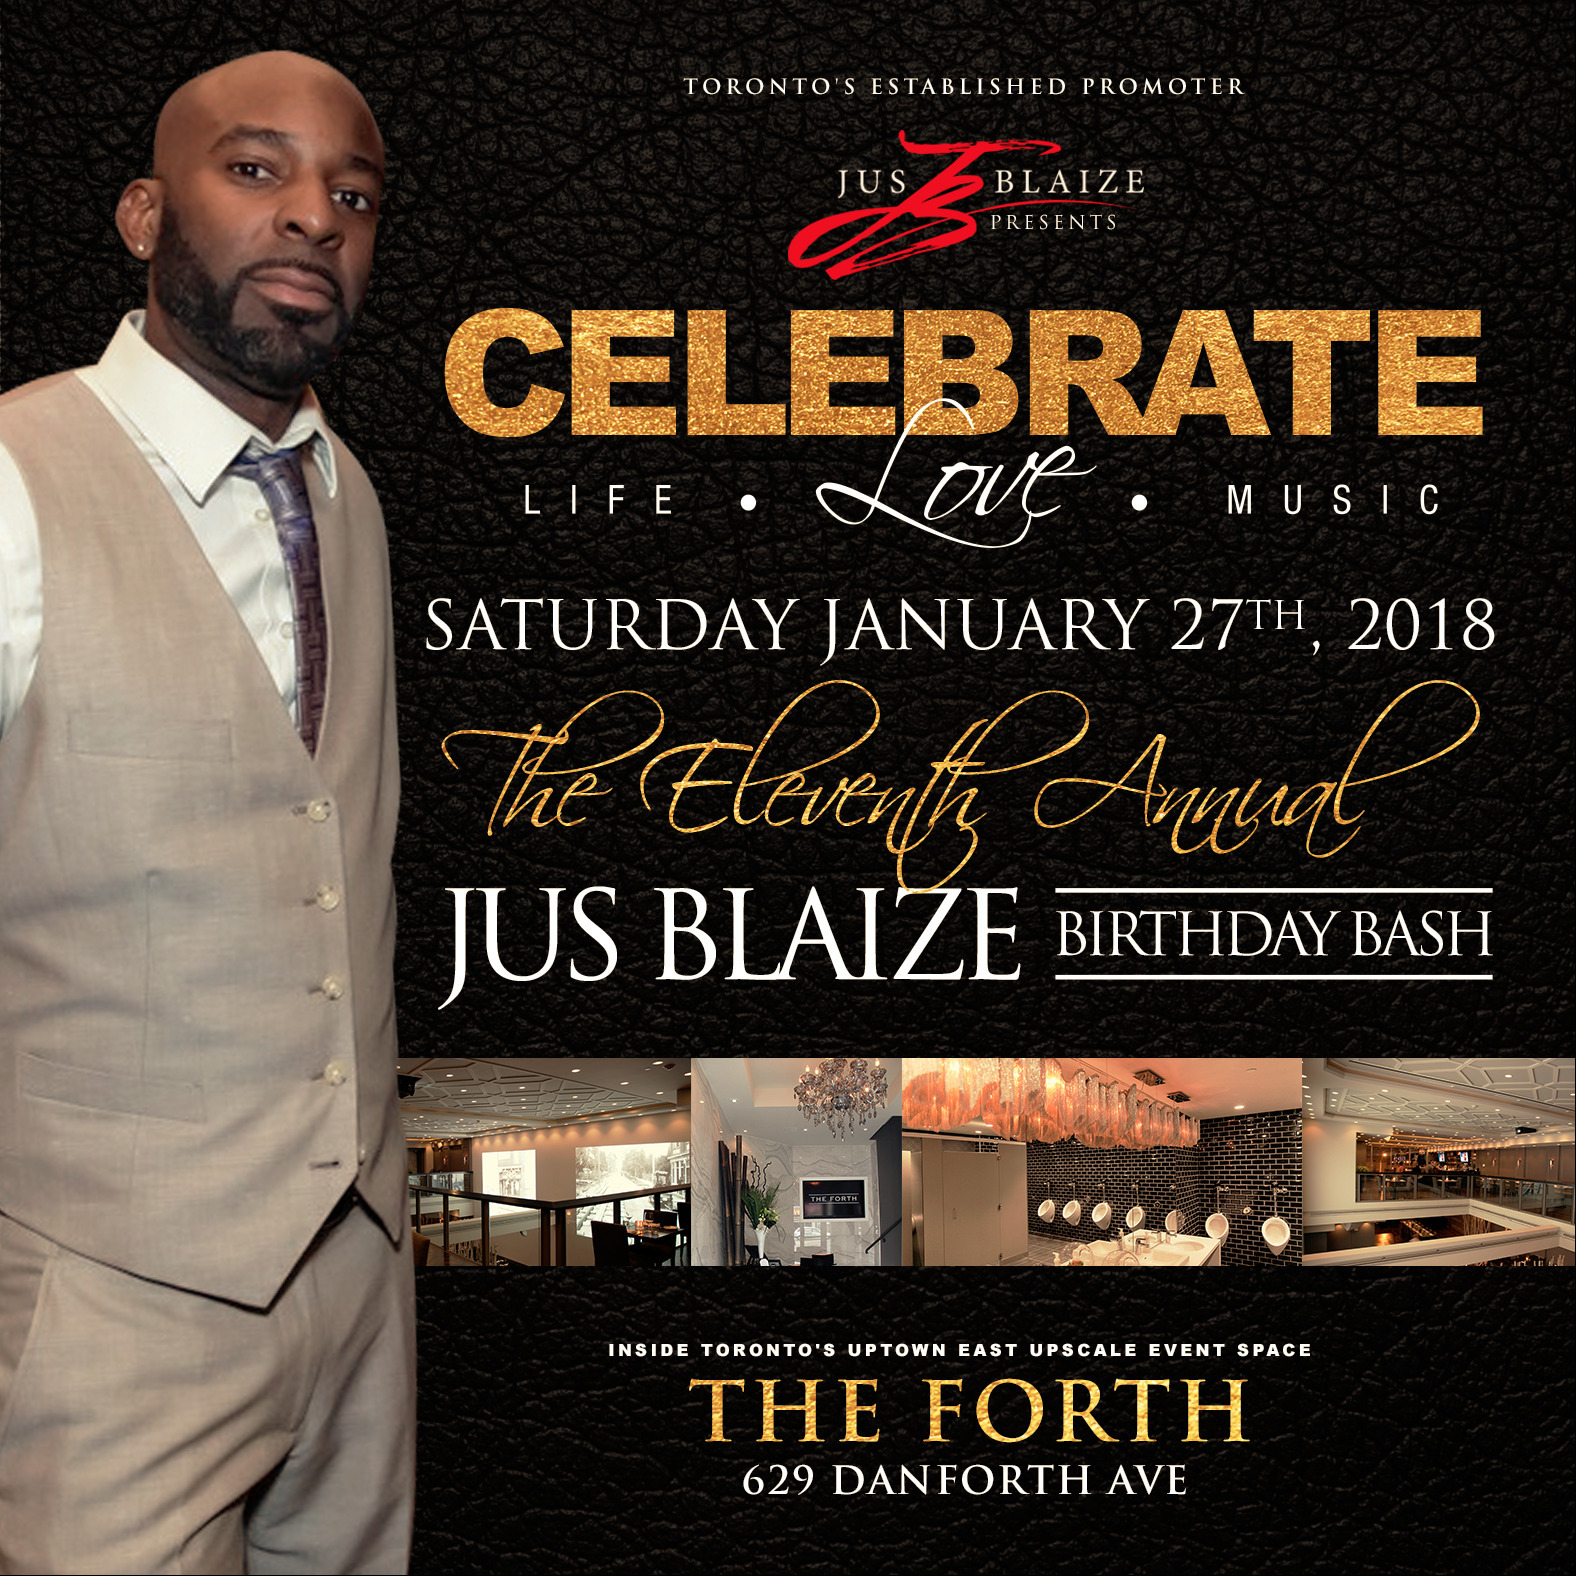 CELEBRATE: Life . Love . Music - The 12th Annual JUS BLAIZE B-Day Bash